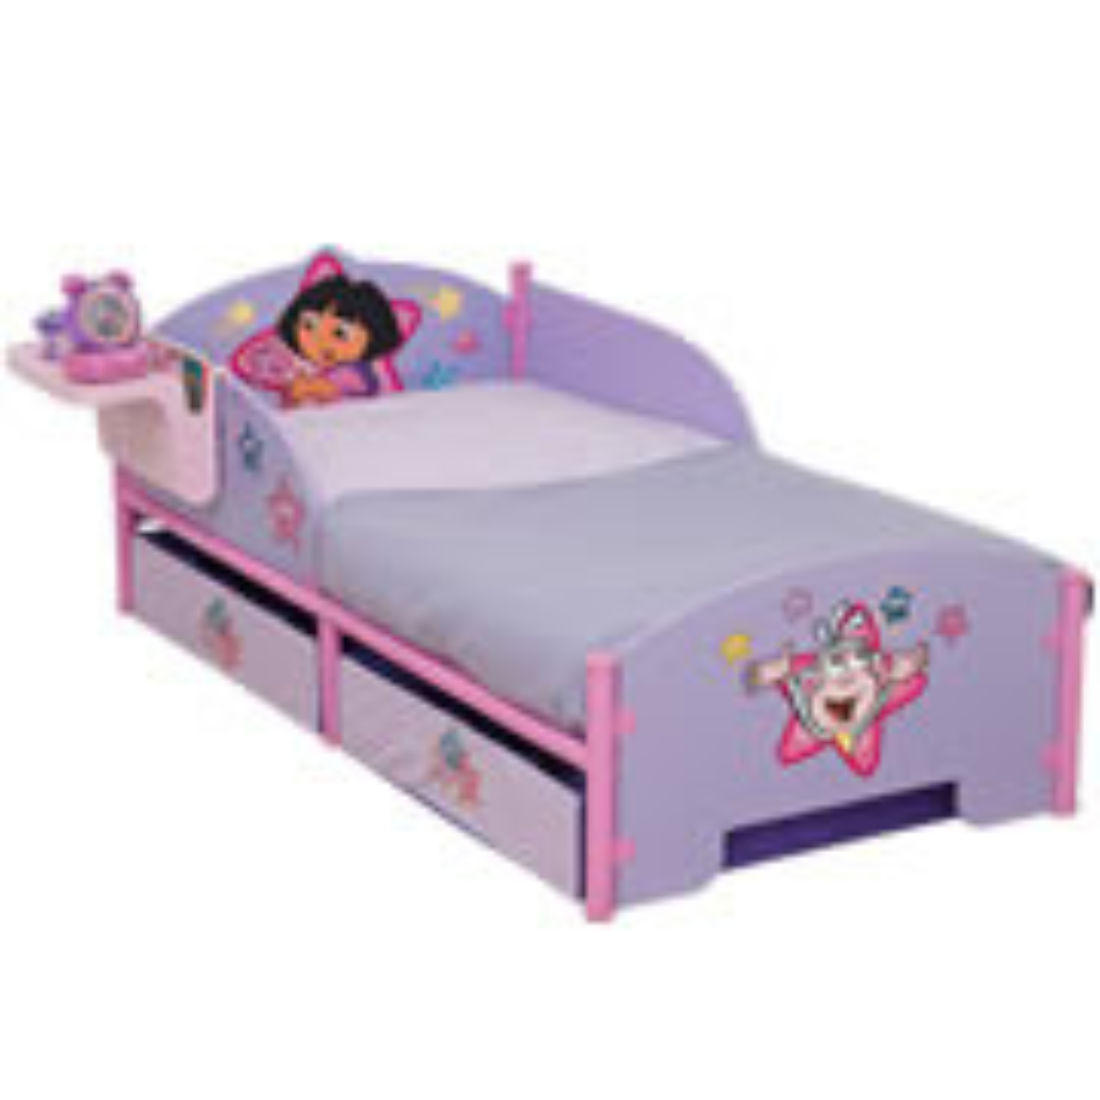 Cot Bed Or Junior Bed Mattress To Fit Dora The Explorer